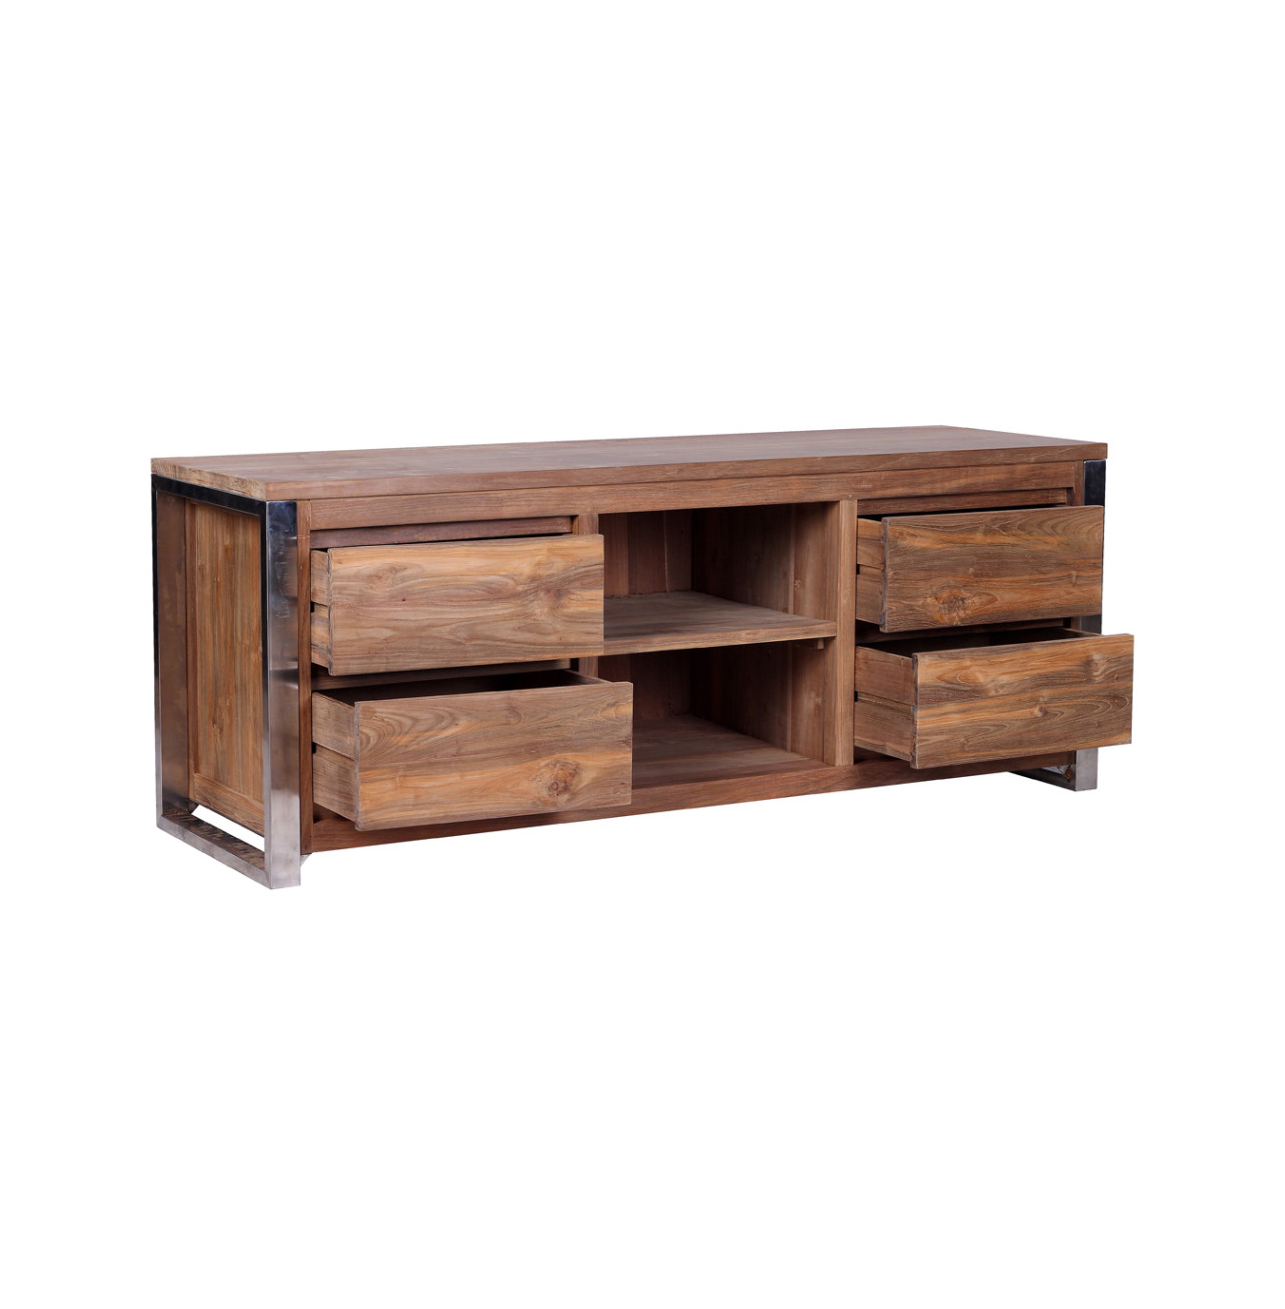 Rarem Reclaimed Wood Tv Stand – Reclaimed Teak And Stainless Steel Pertaining To Recent Reclaimed Wood And Metal Tv Stands (Gallery 6 of 20)